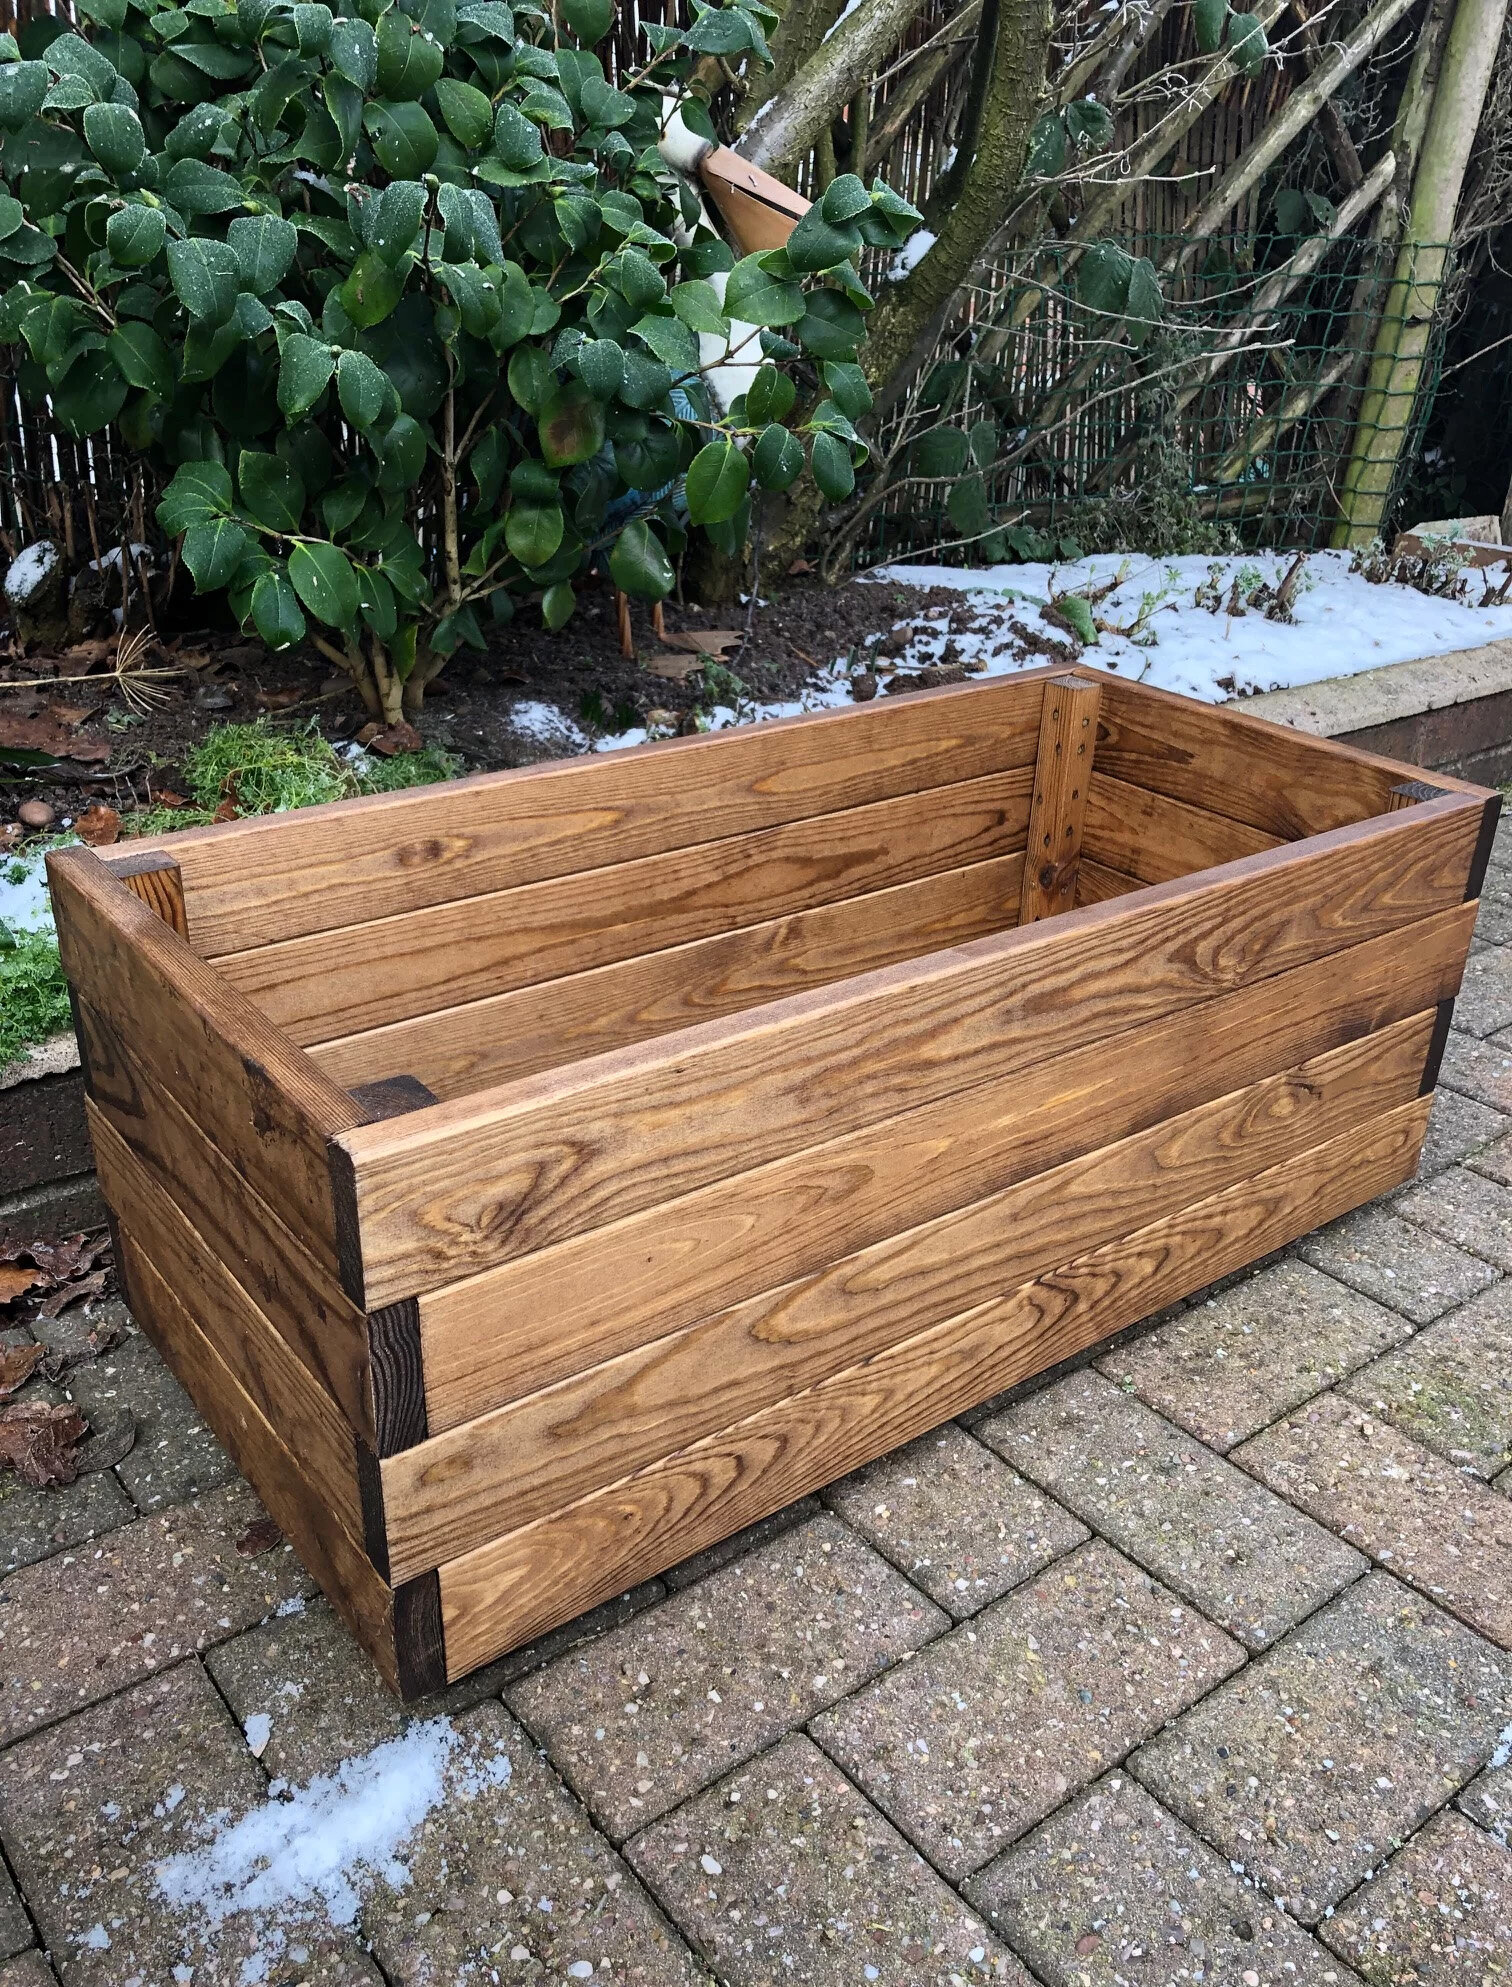 Alpen Home Trevion Wooden Planter Box Reviews Wayfair Co Uk